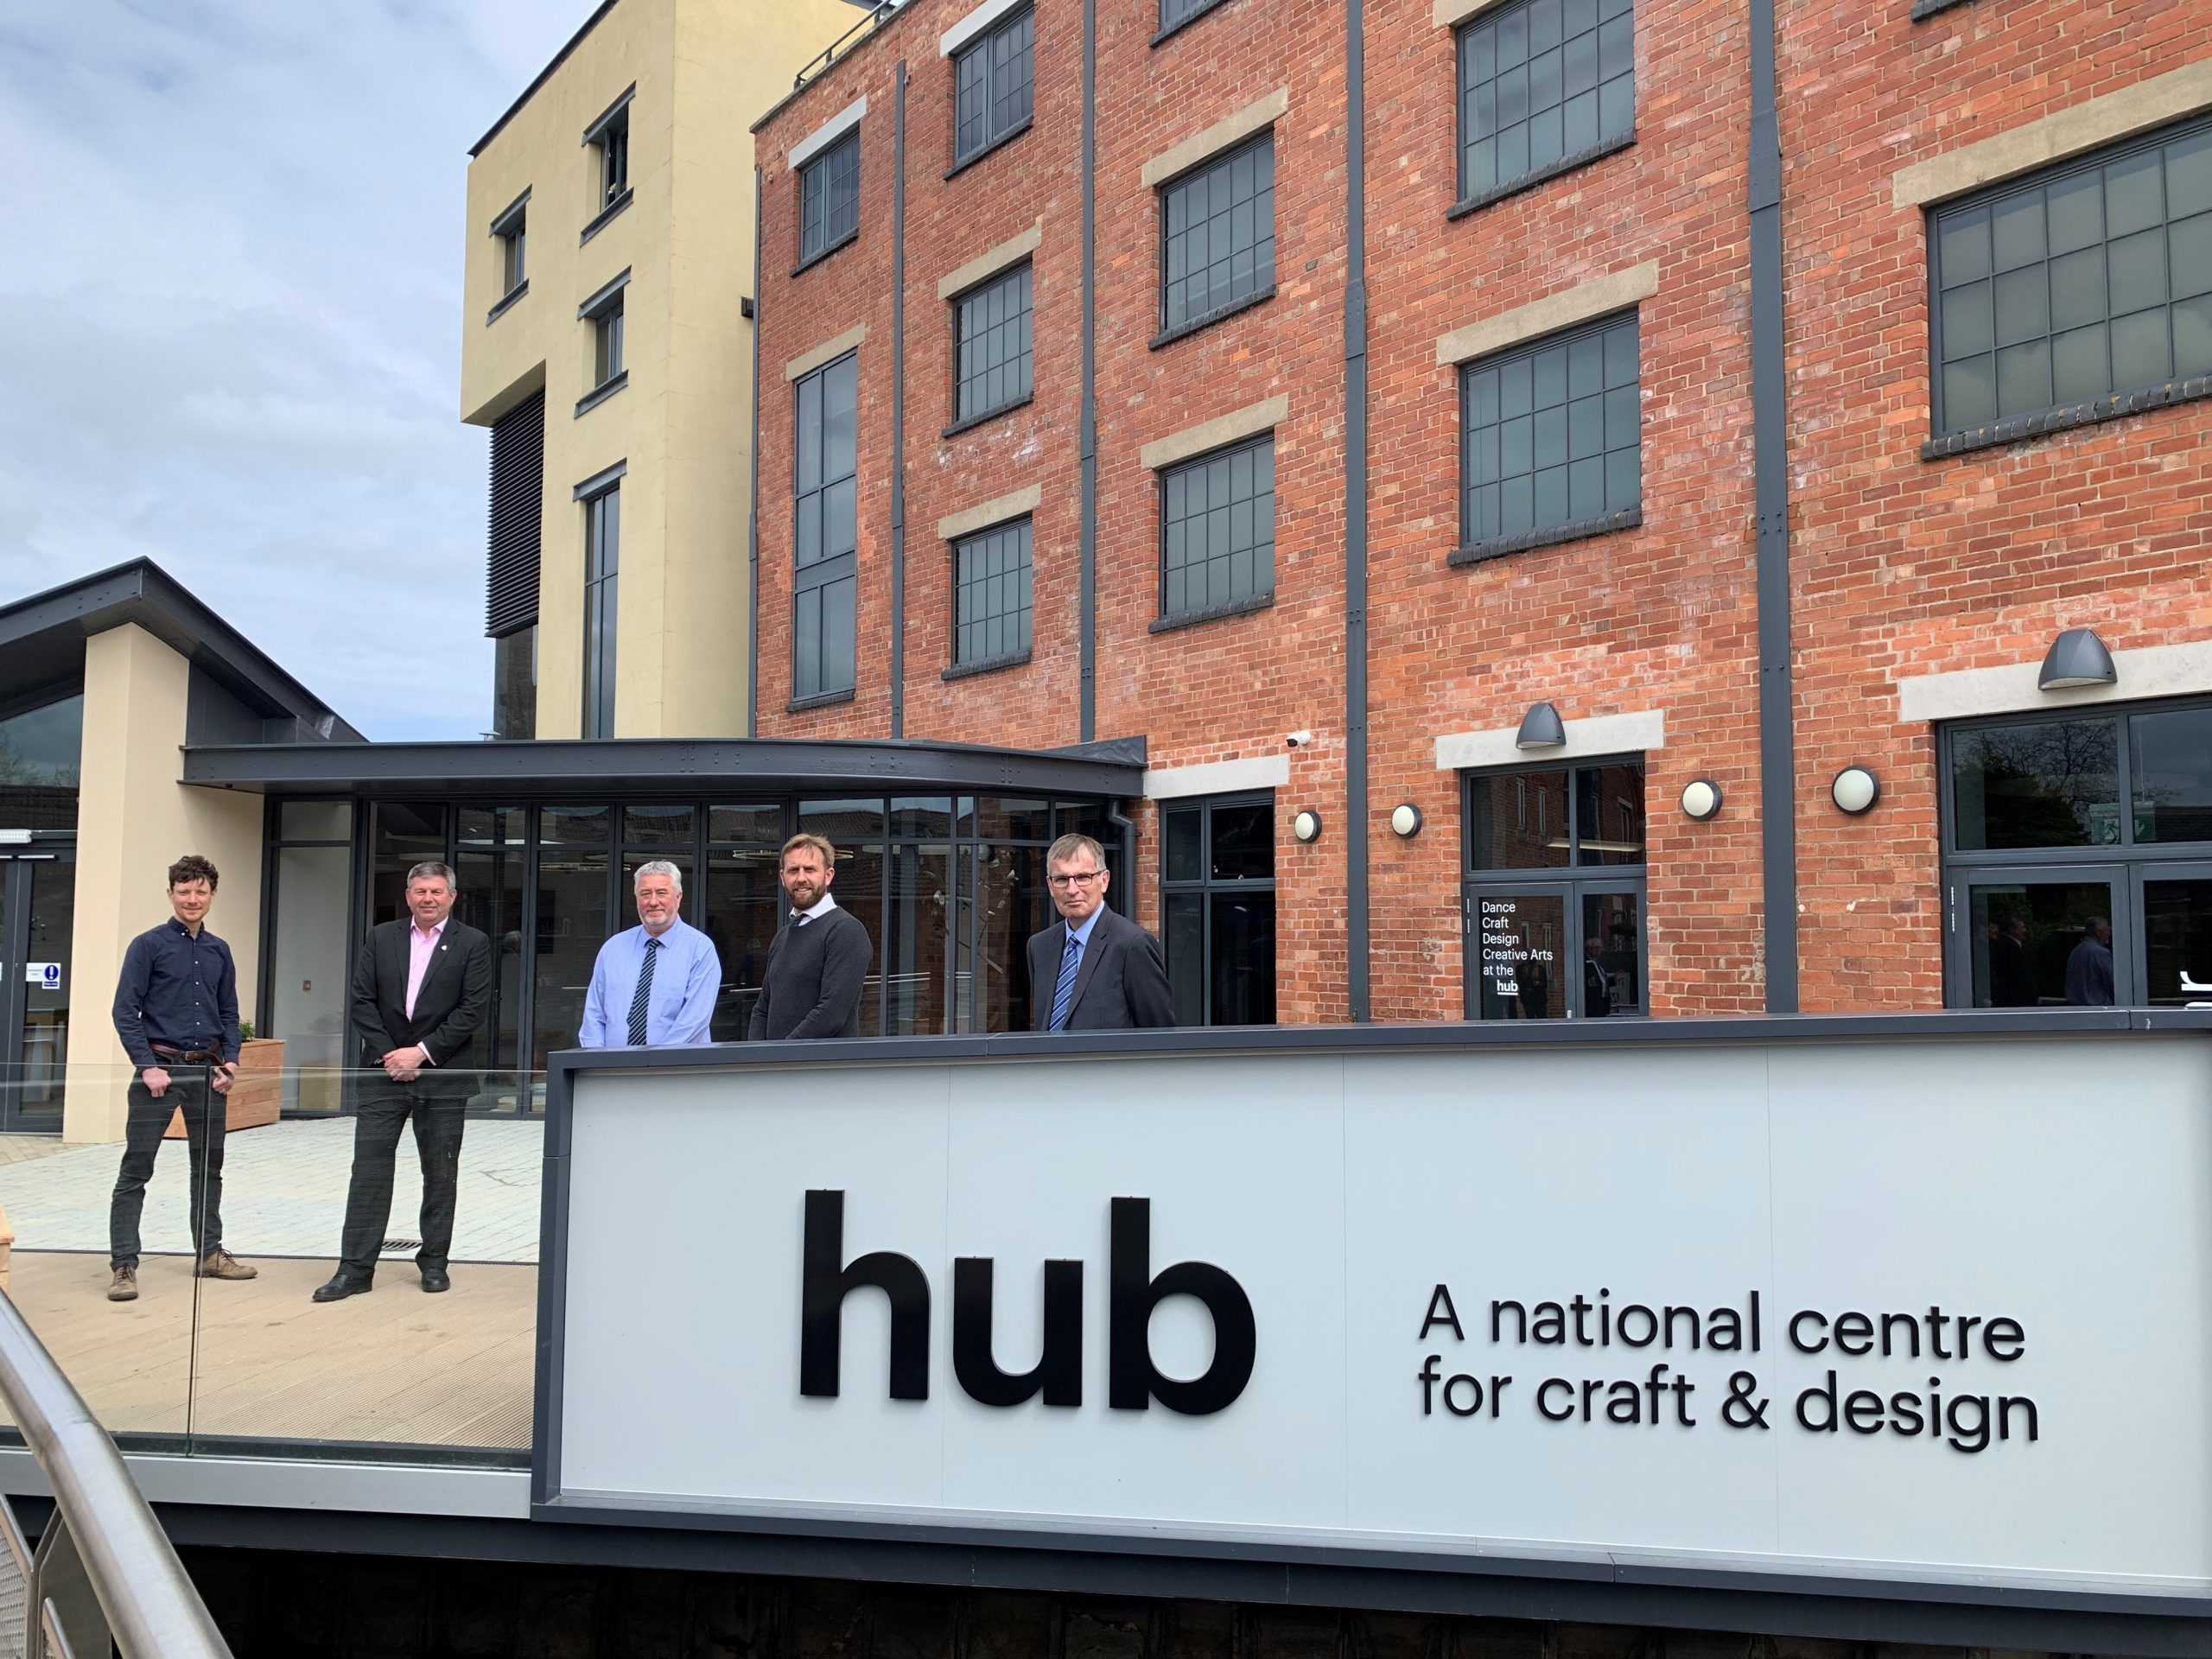 Arts hub to reopen after £1.2m revamp